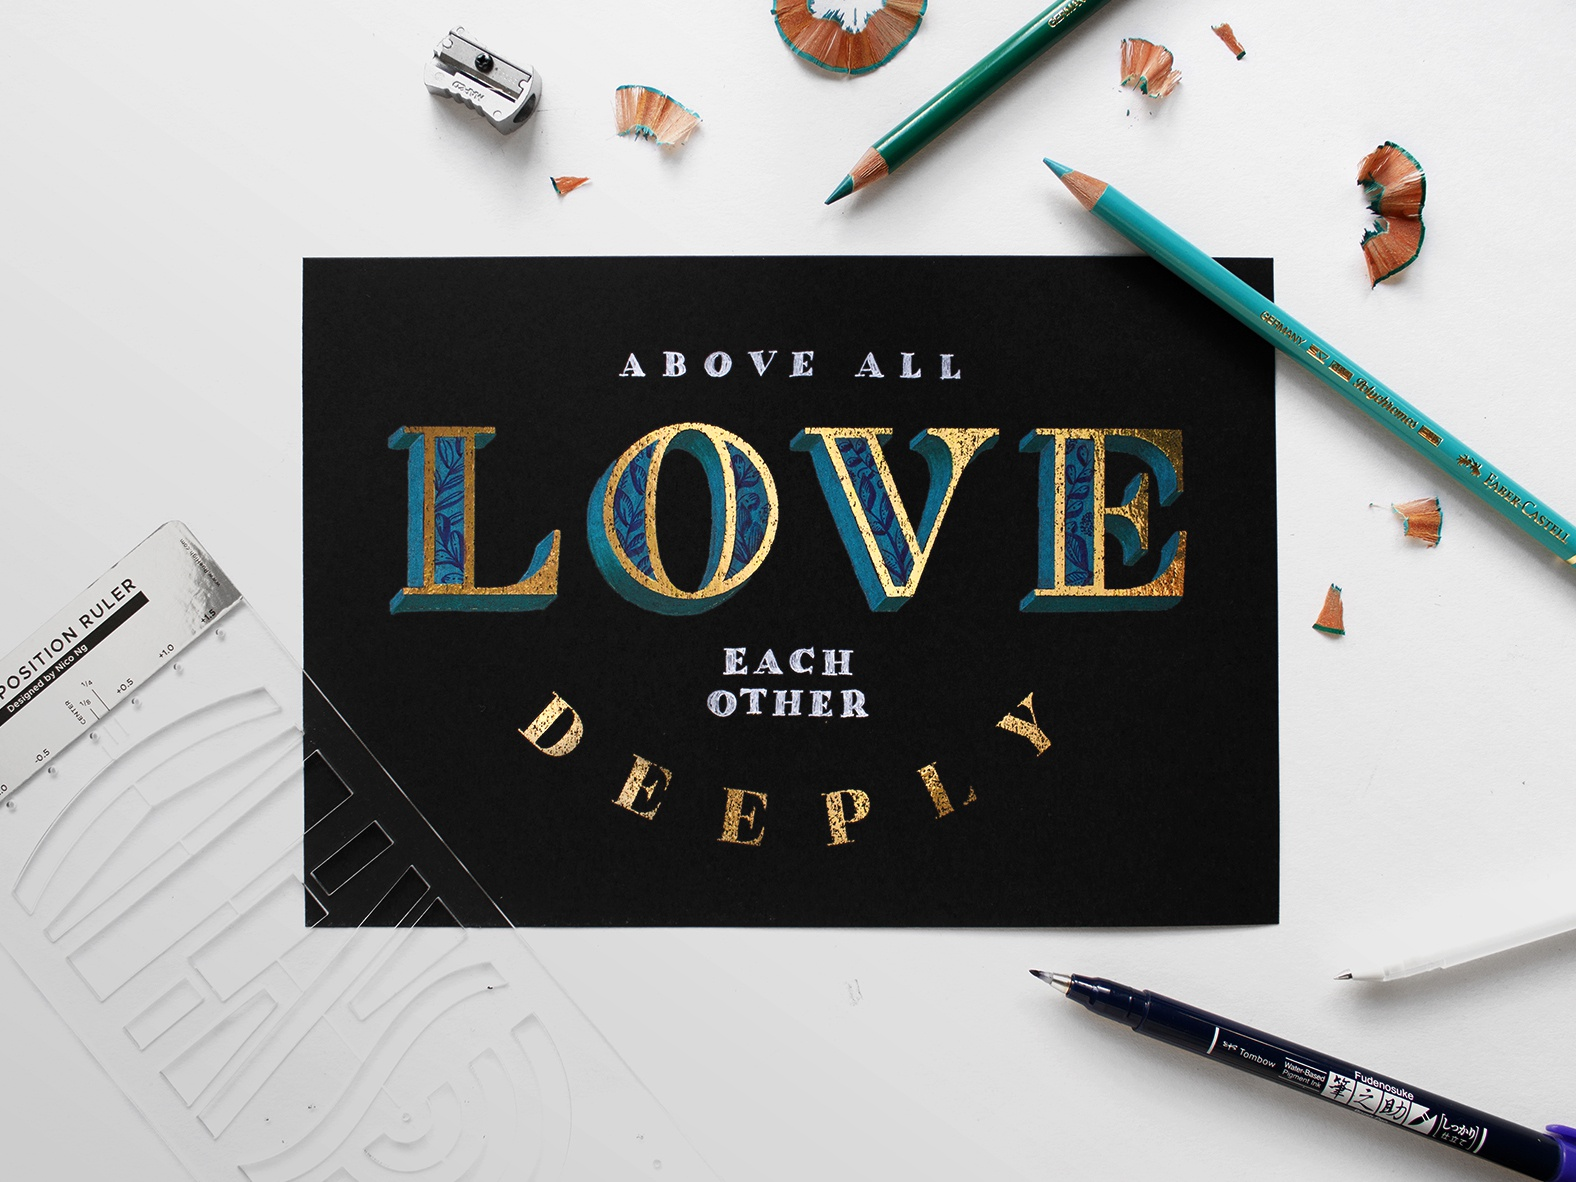 Above All Love Each Other Deeply (3D Gold Lettering) bible lettering gold brush calligraphy brush pen floral decoration detailed lettering illustration gold leaf color pencil calligraphy bible verse gold lettering color pencil 3d lettering digital calligraphy design lettering composition typography type lettering hand-lettering